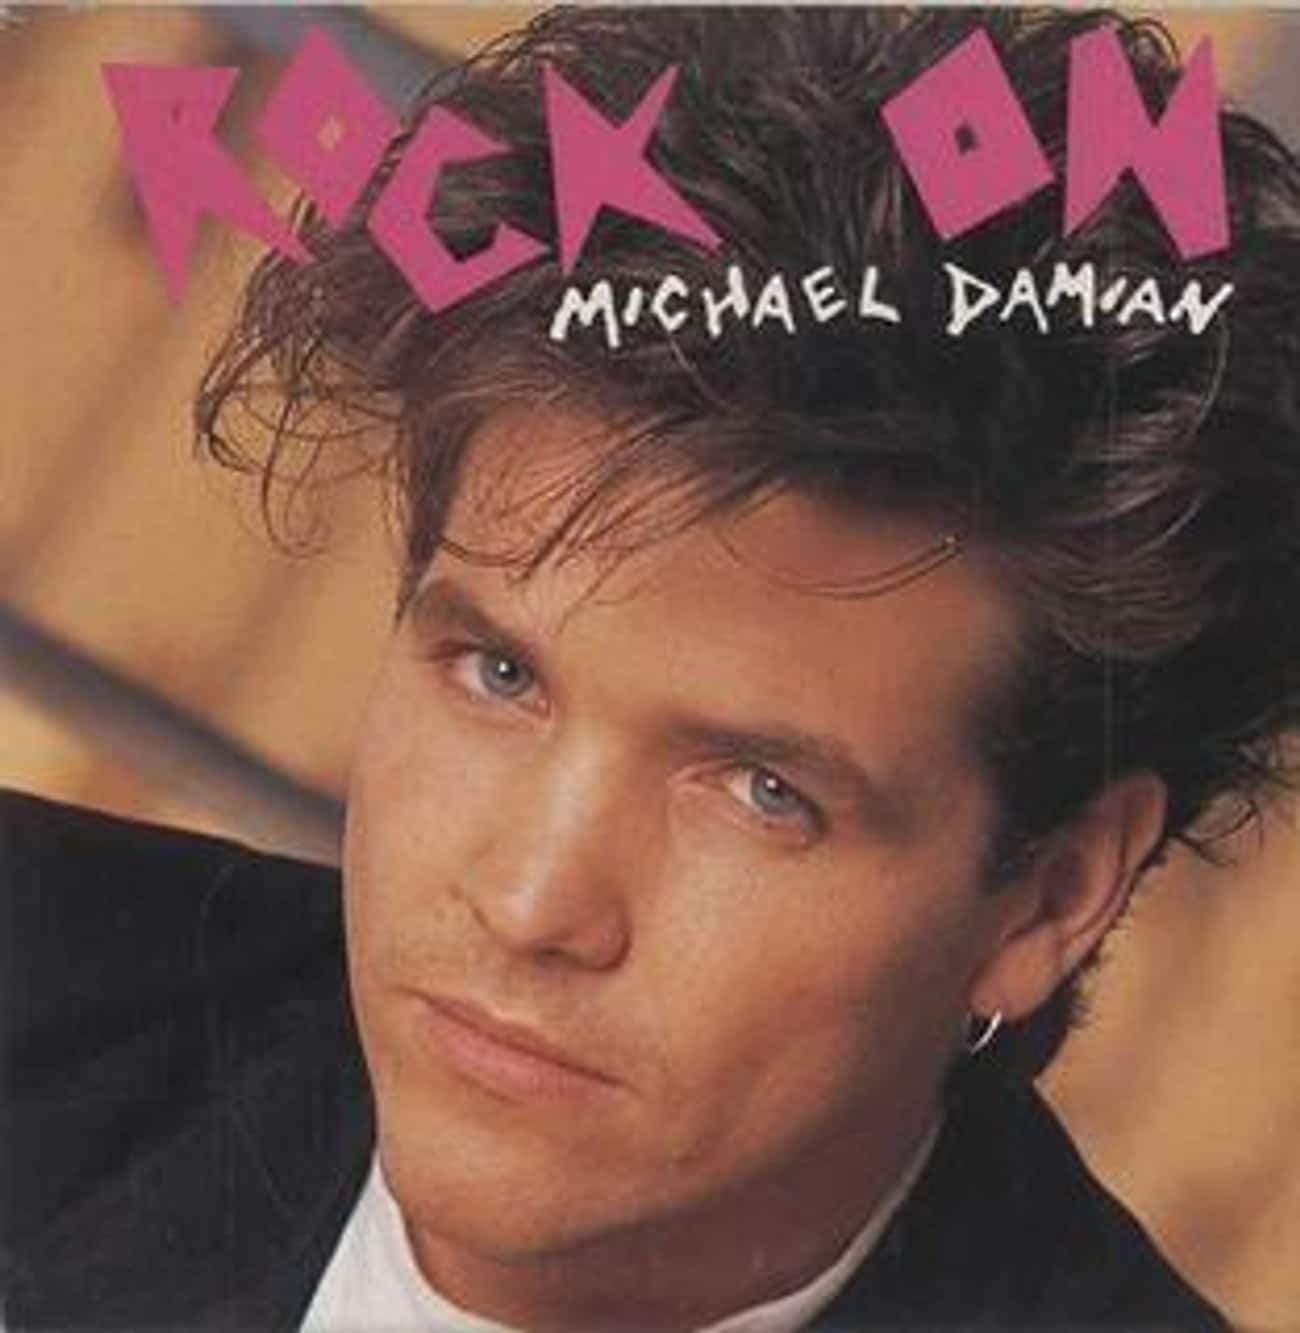 Michael Damian: 'Rock On' From is listed (or ranked) 2 on the list Which '80s Actor Or Actress Had The Most Impressive Album?